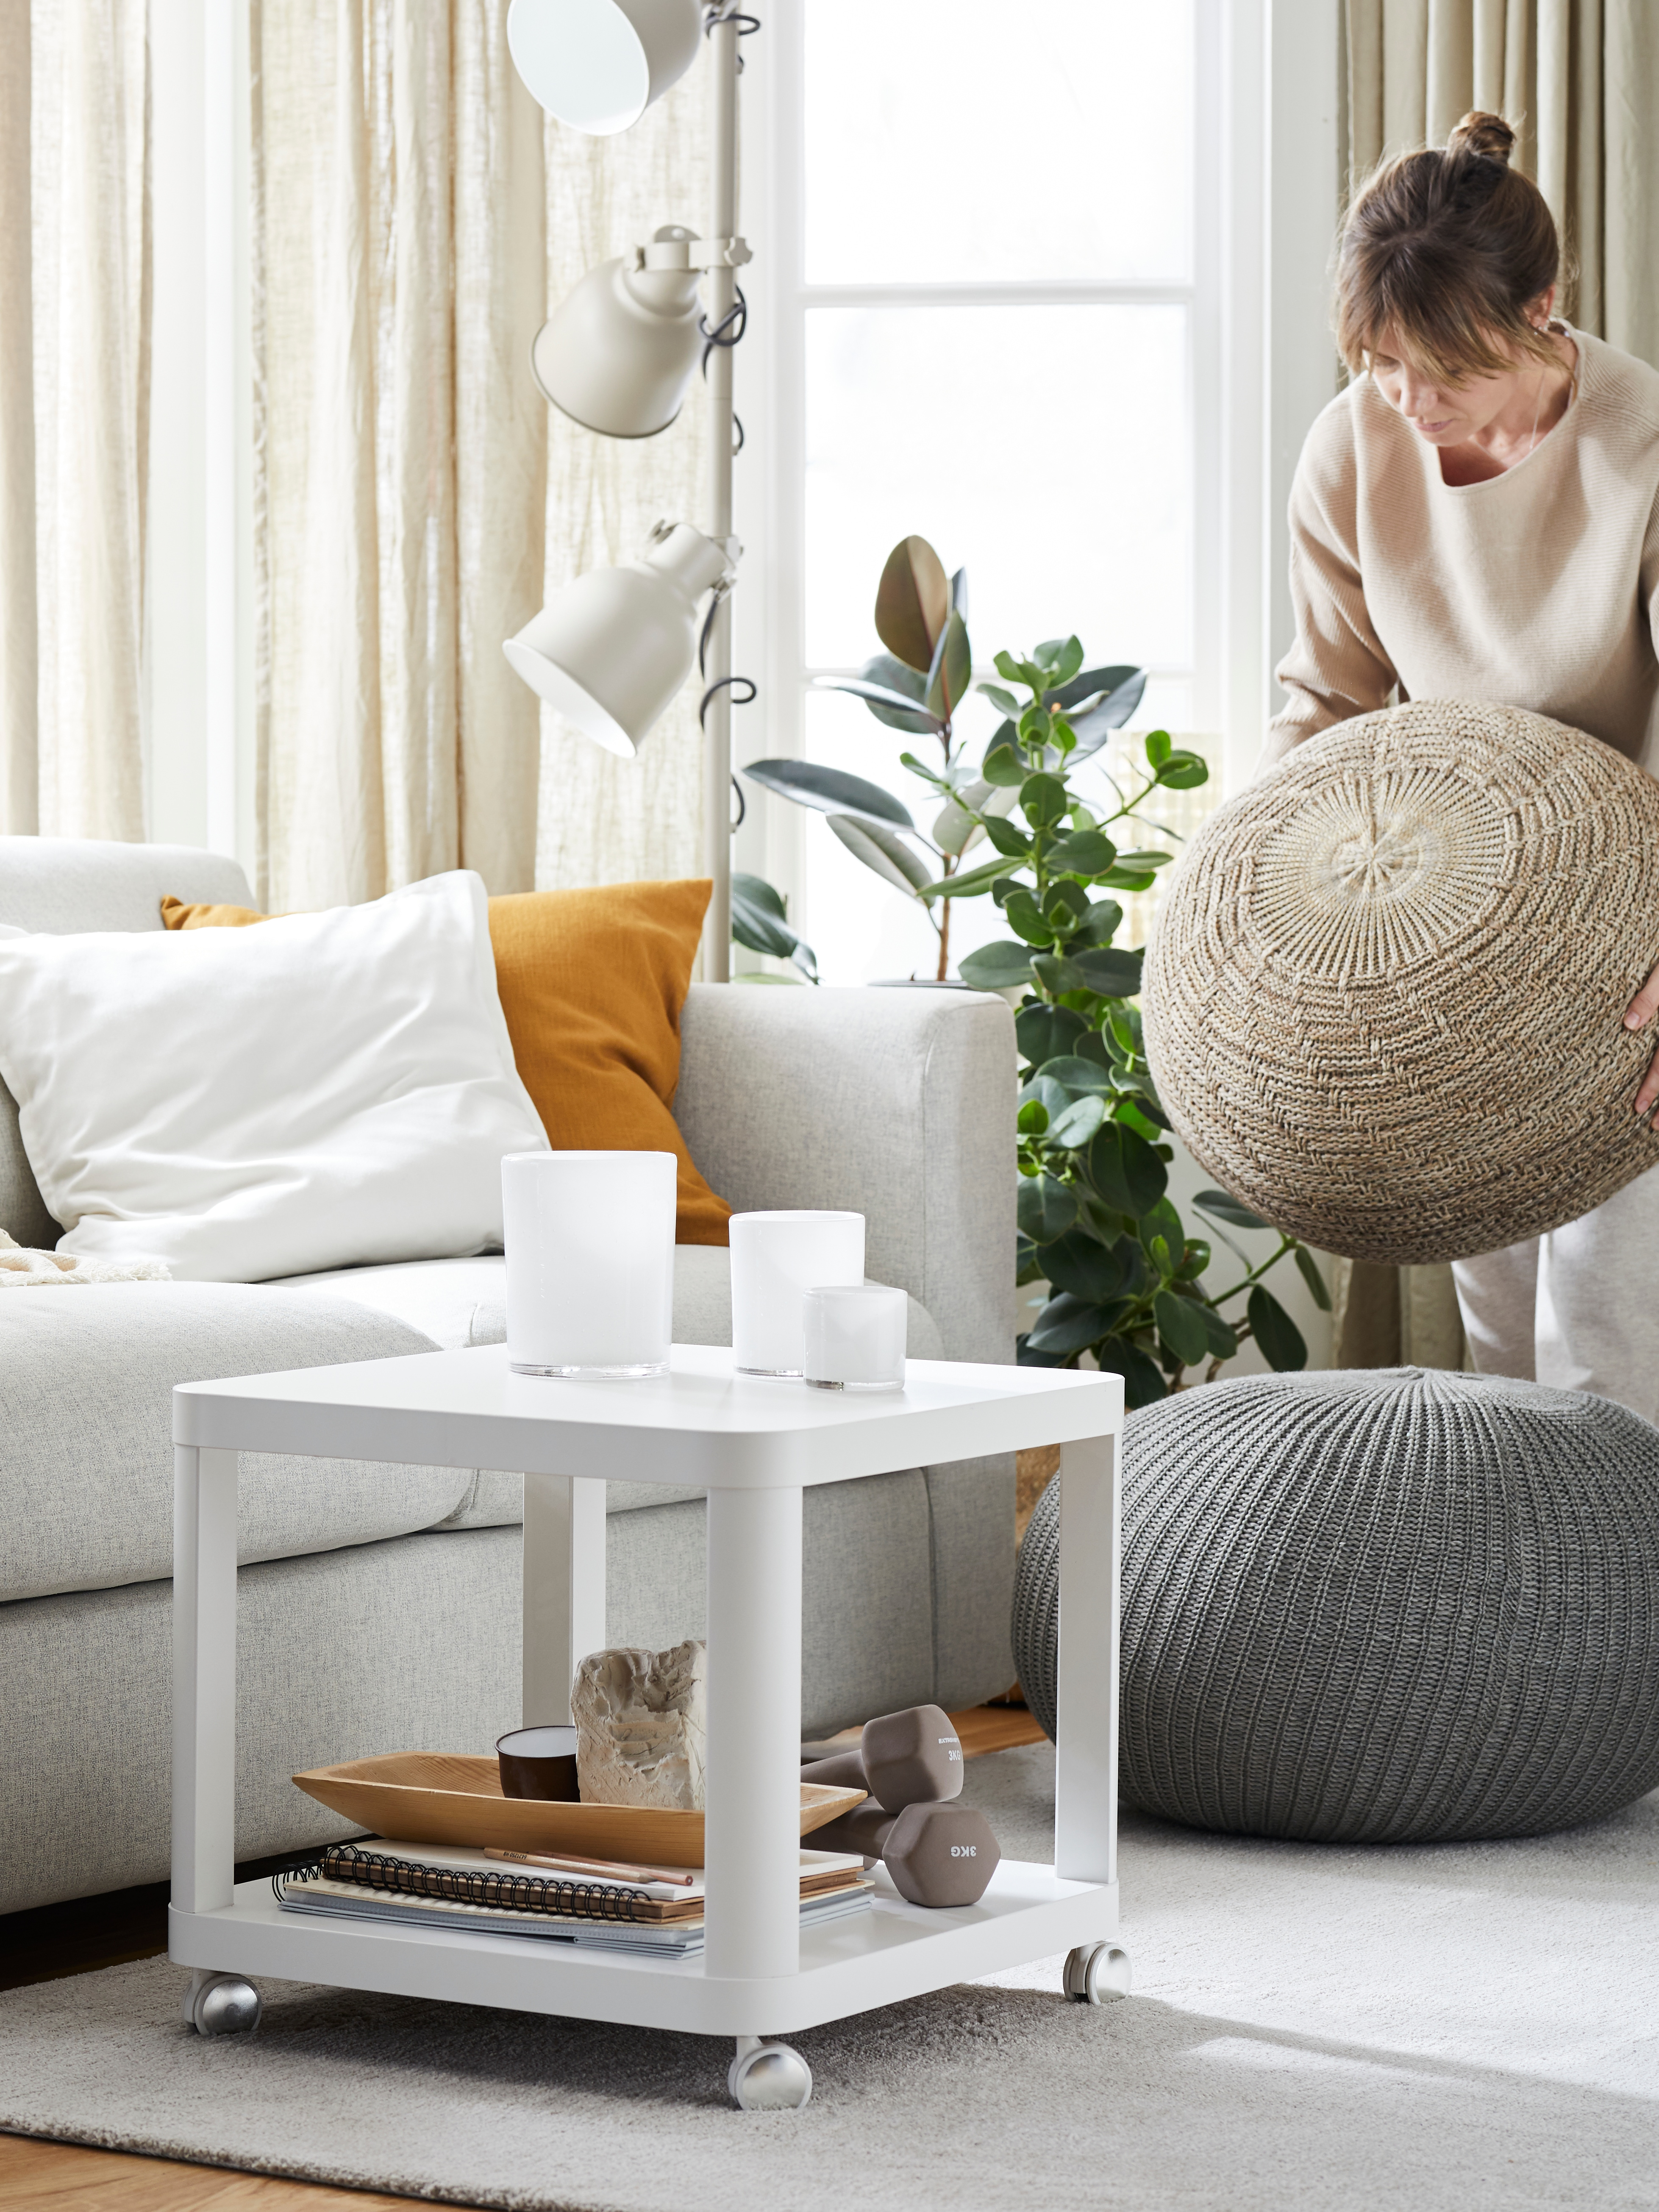 A white TINGBY side table on castors holds candles and dumbbells by a sofa. A person is stacking woven pouffes nearby.